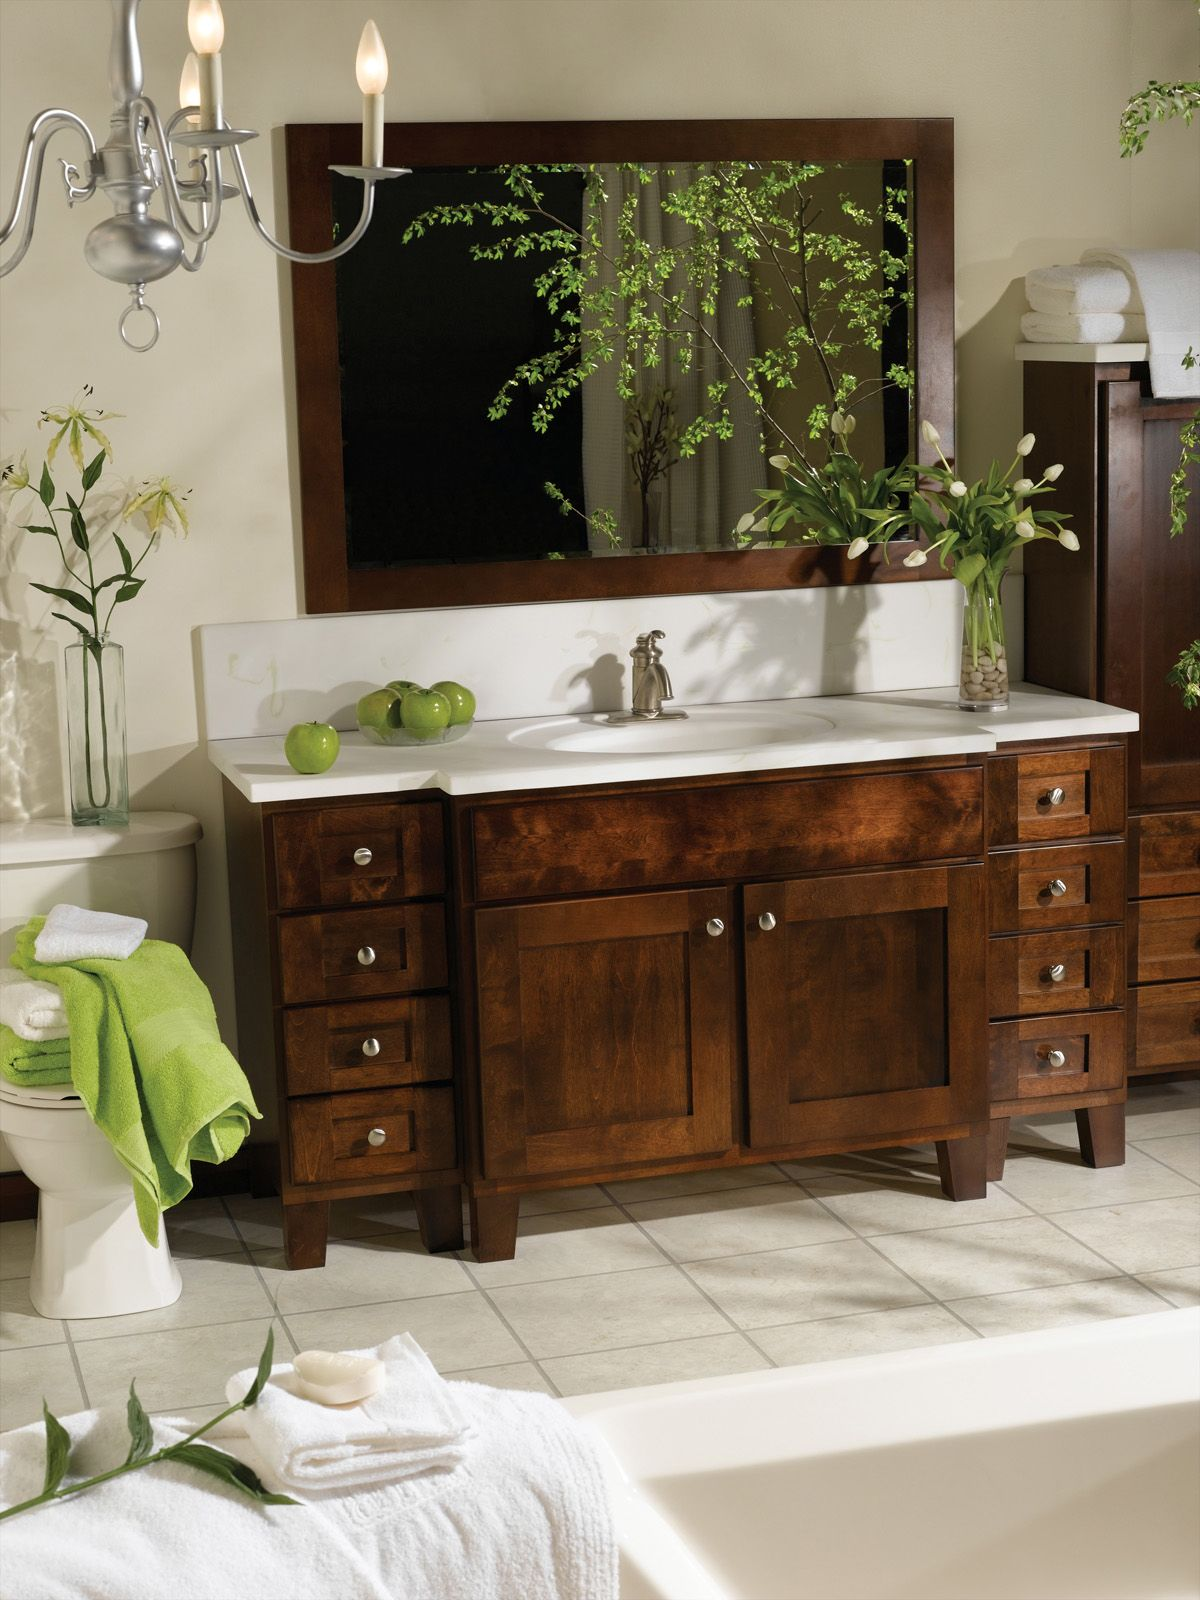 inspirational bath trough mounted f hickory bathroom plymouth hardwood cabinets ceramic vanities white lovely sink wall of vanity bertch